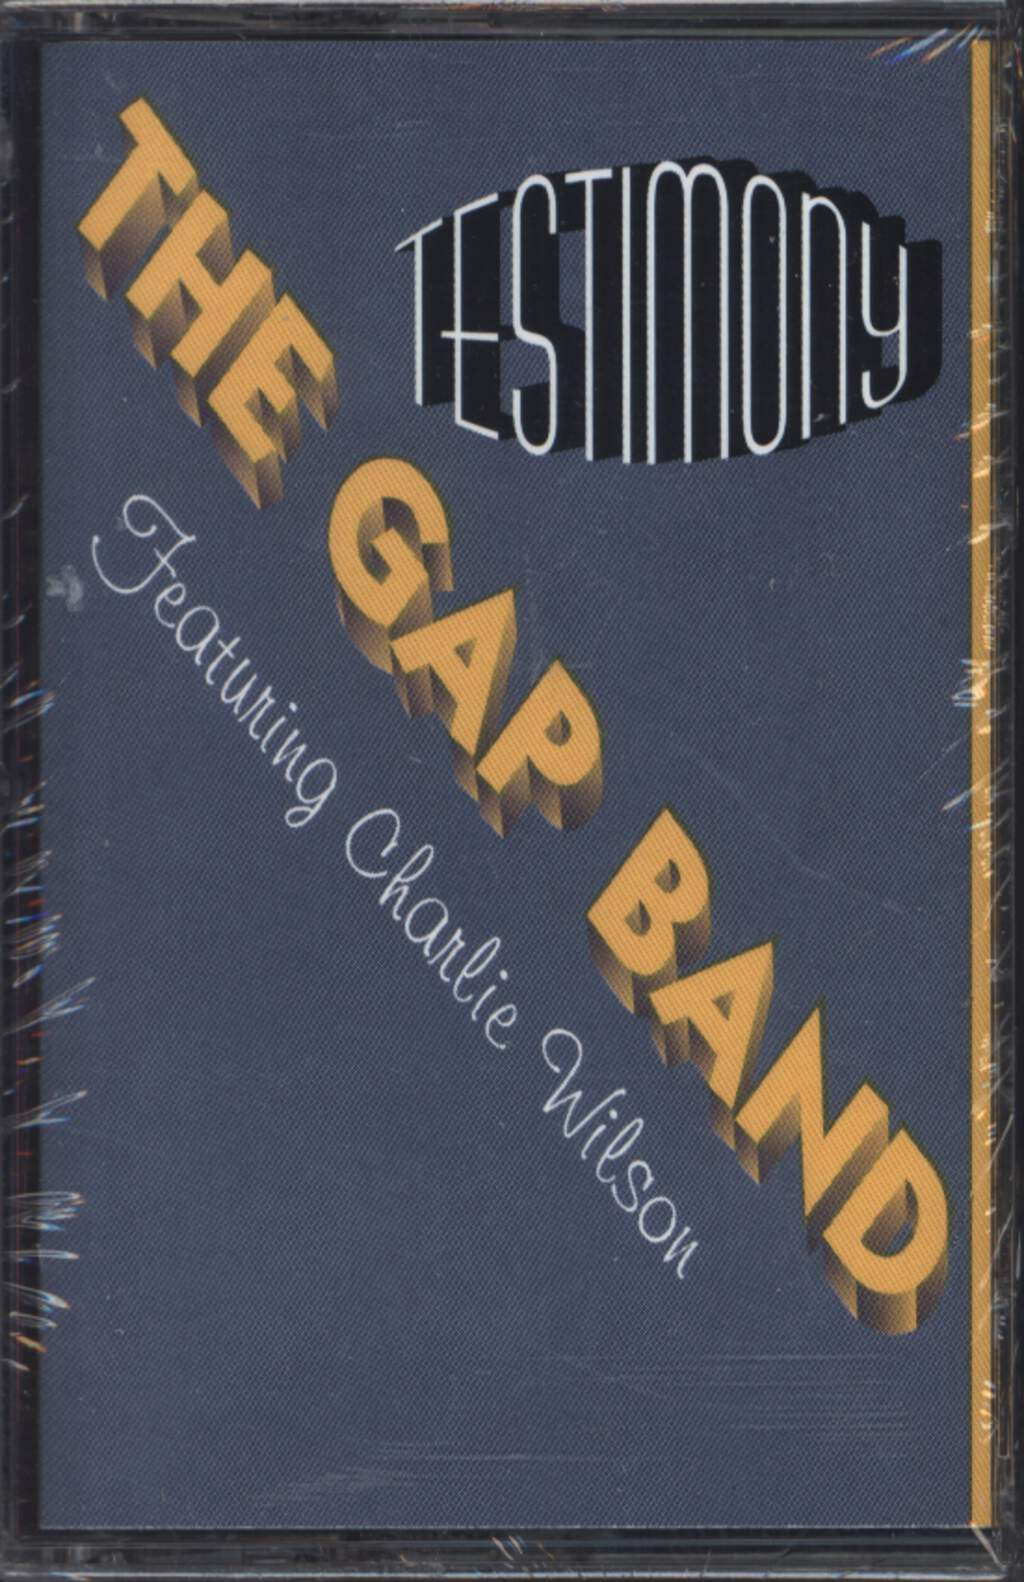 The Gap Band: Testimony, Compact Cassette